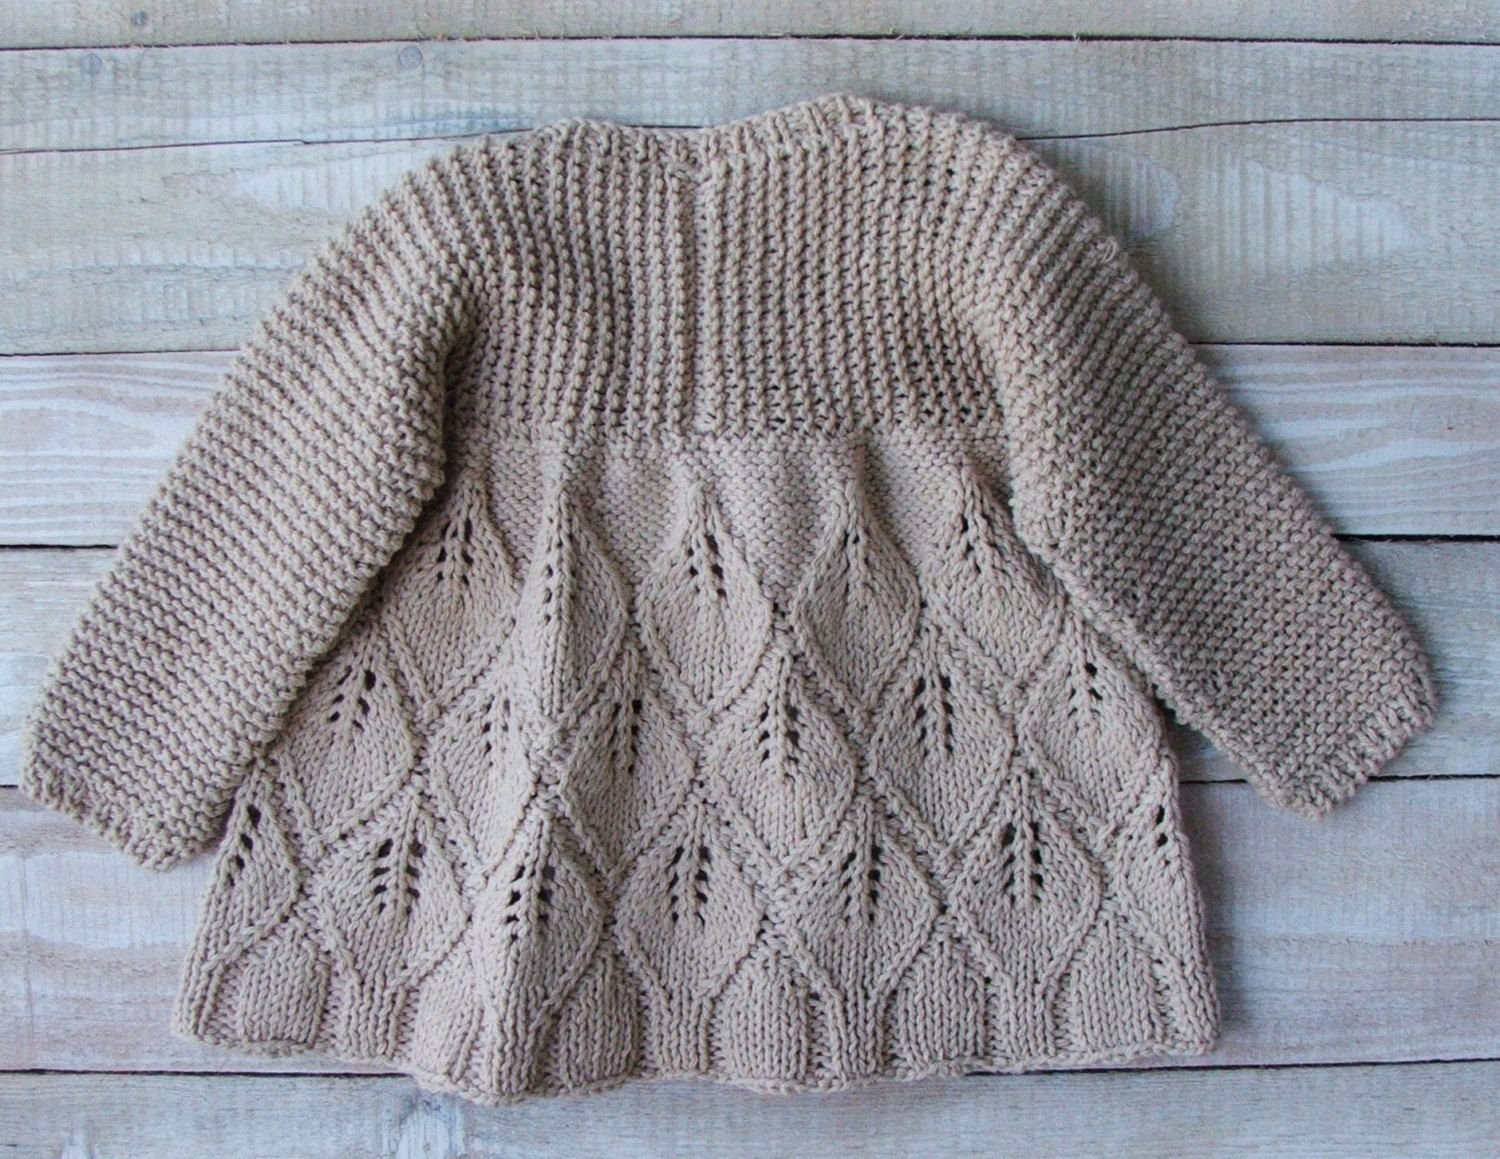 Reserved for B. T. - Hand Knitted Beige Cotton Sweater Size 2T ...